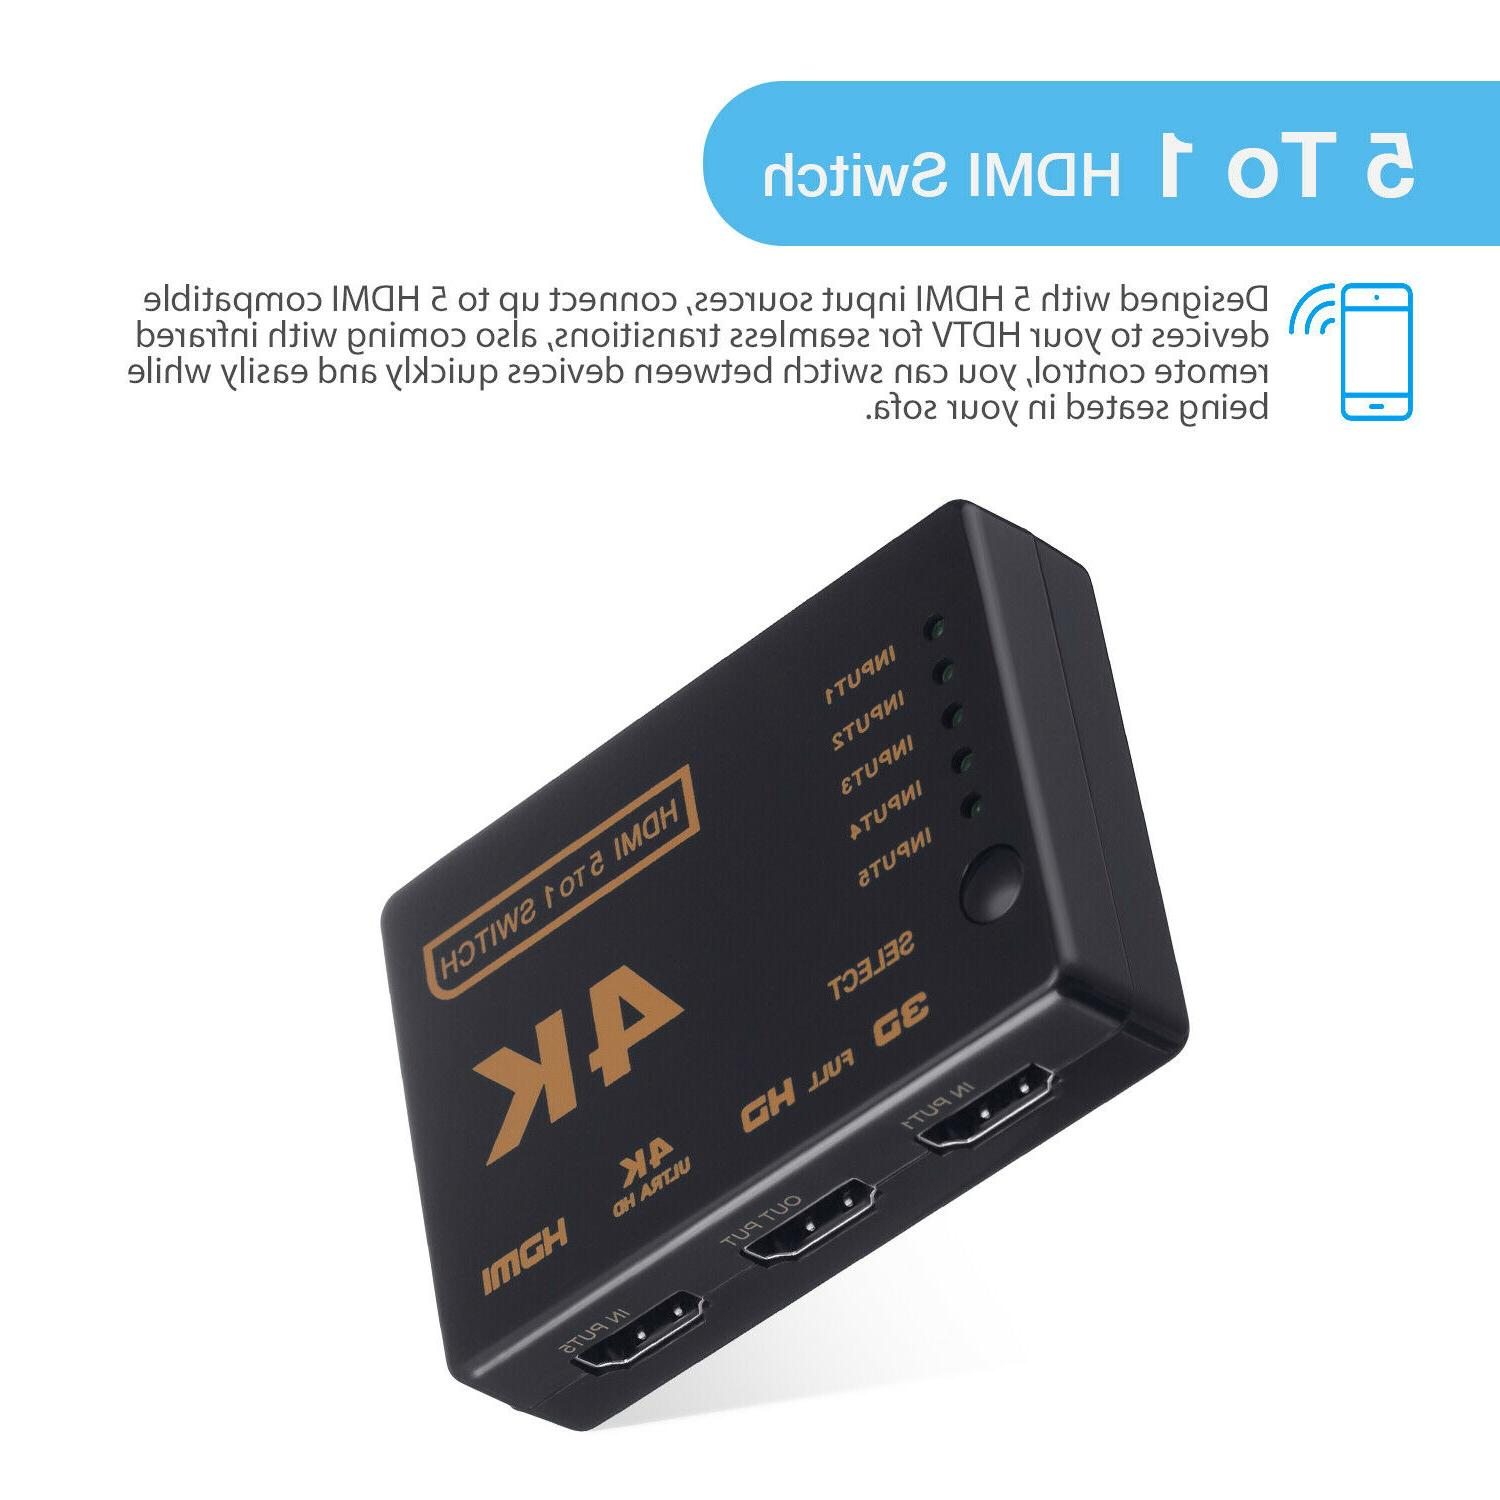 5Port 4K HDMI Switch Splitter Hub Remote